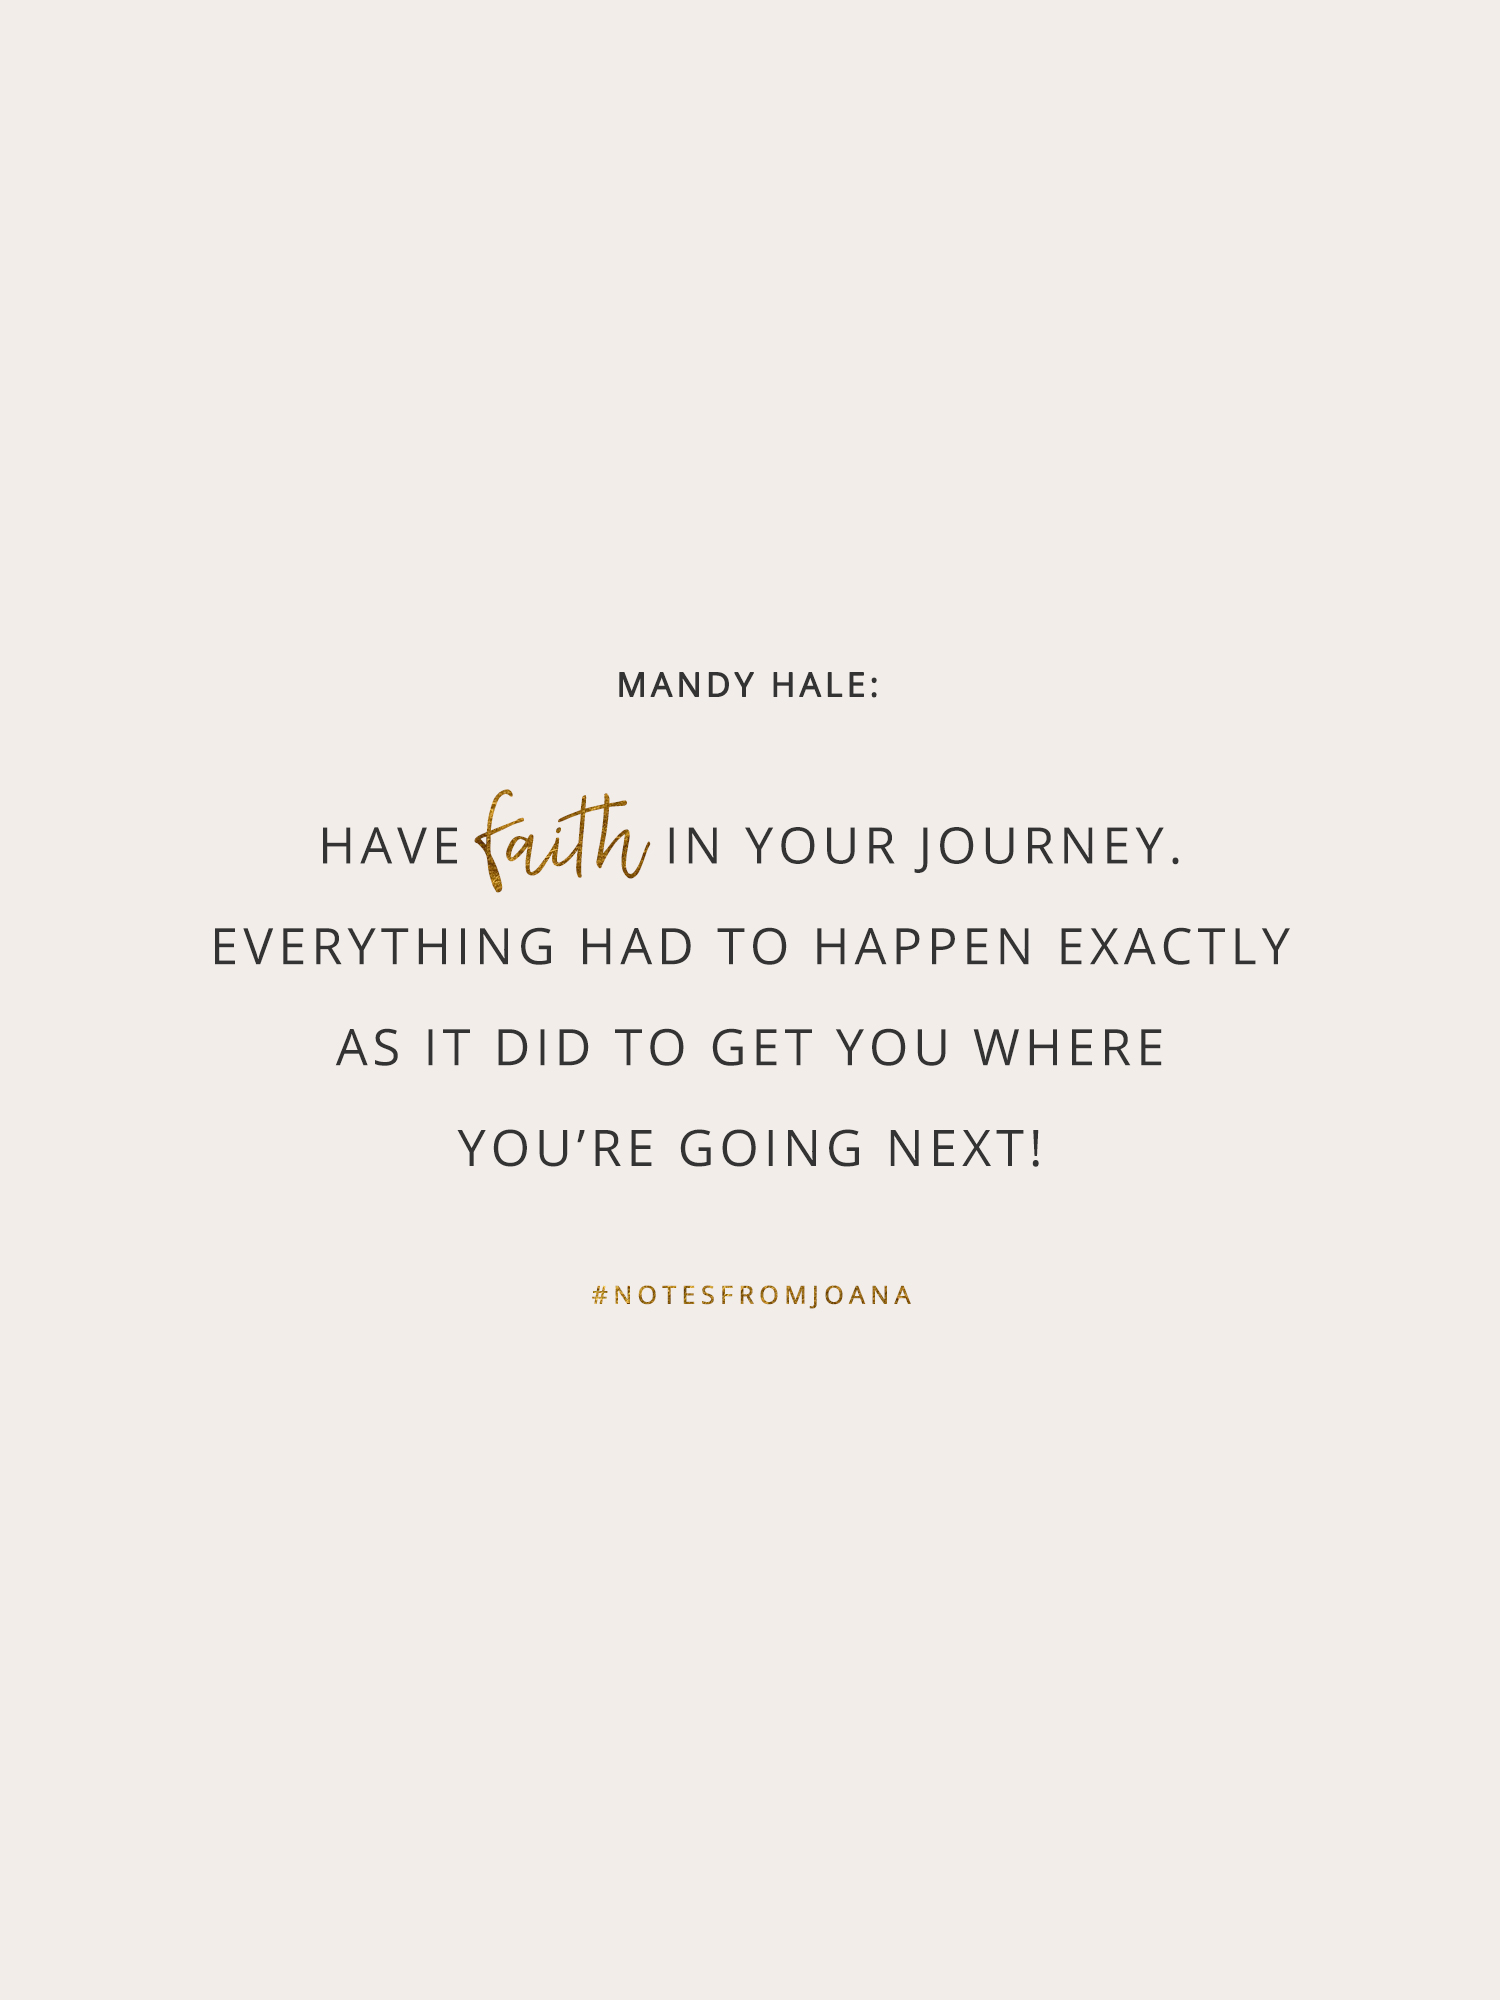 20 Inspirational Quotes To Help You Become Your Best Self. Have faith in your journey. Everything had to happen exactly as it did to get you where you're going next! MANDY HALE // Notes from Joana